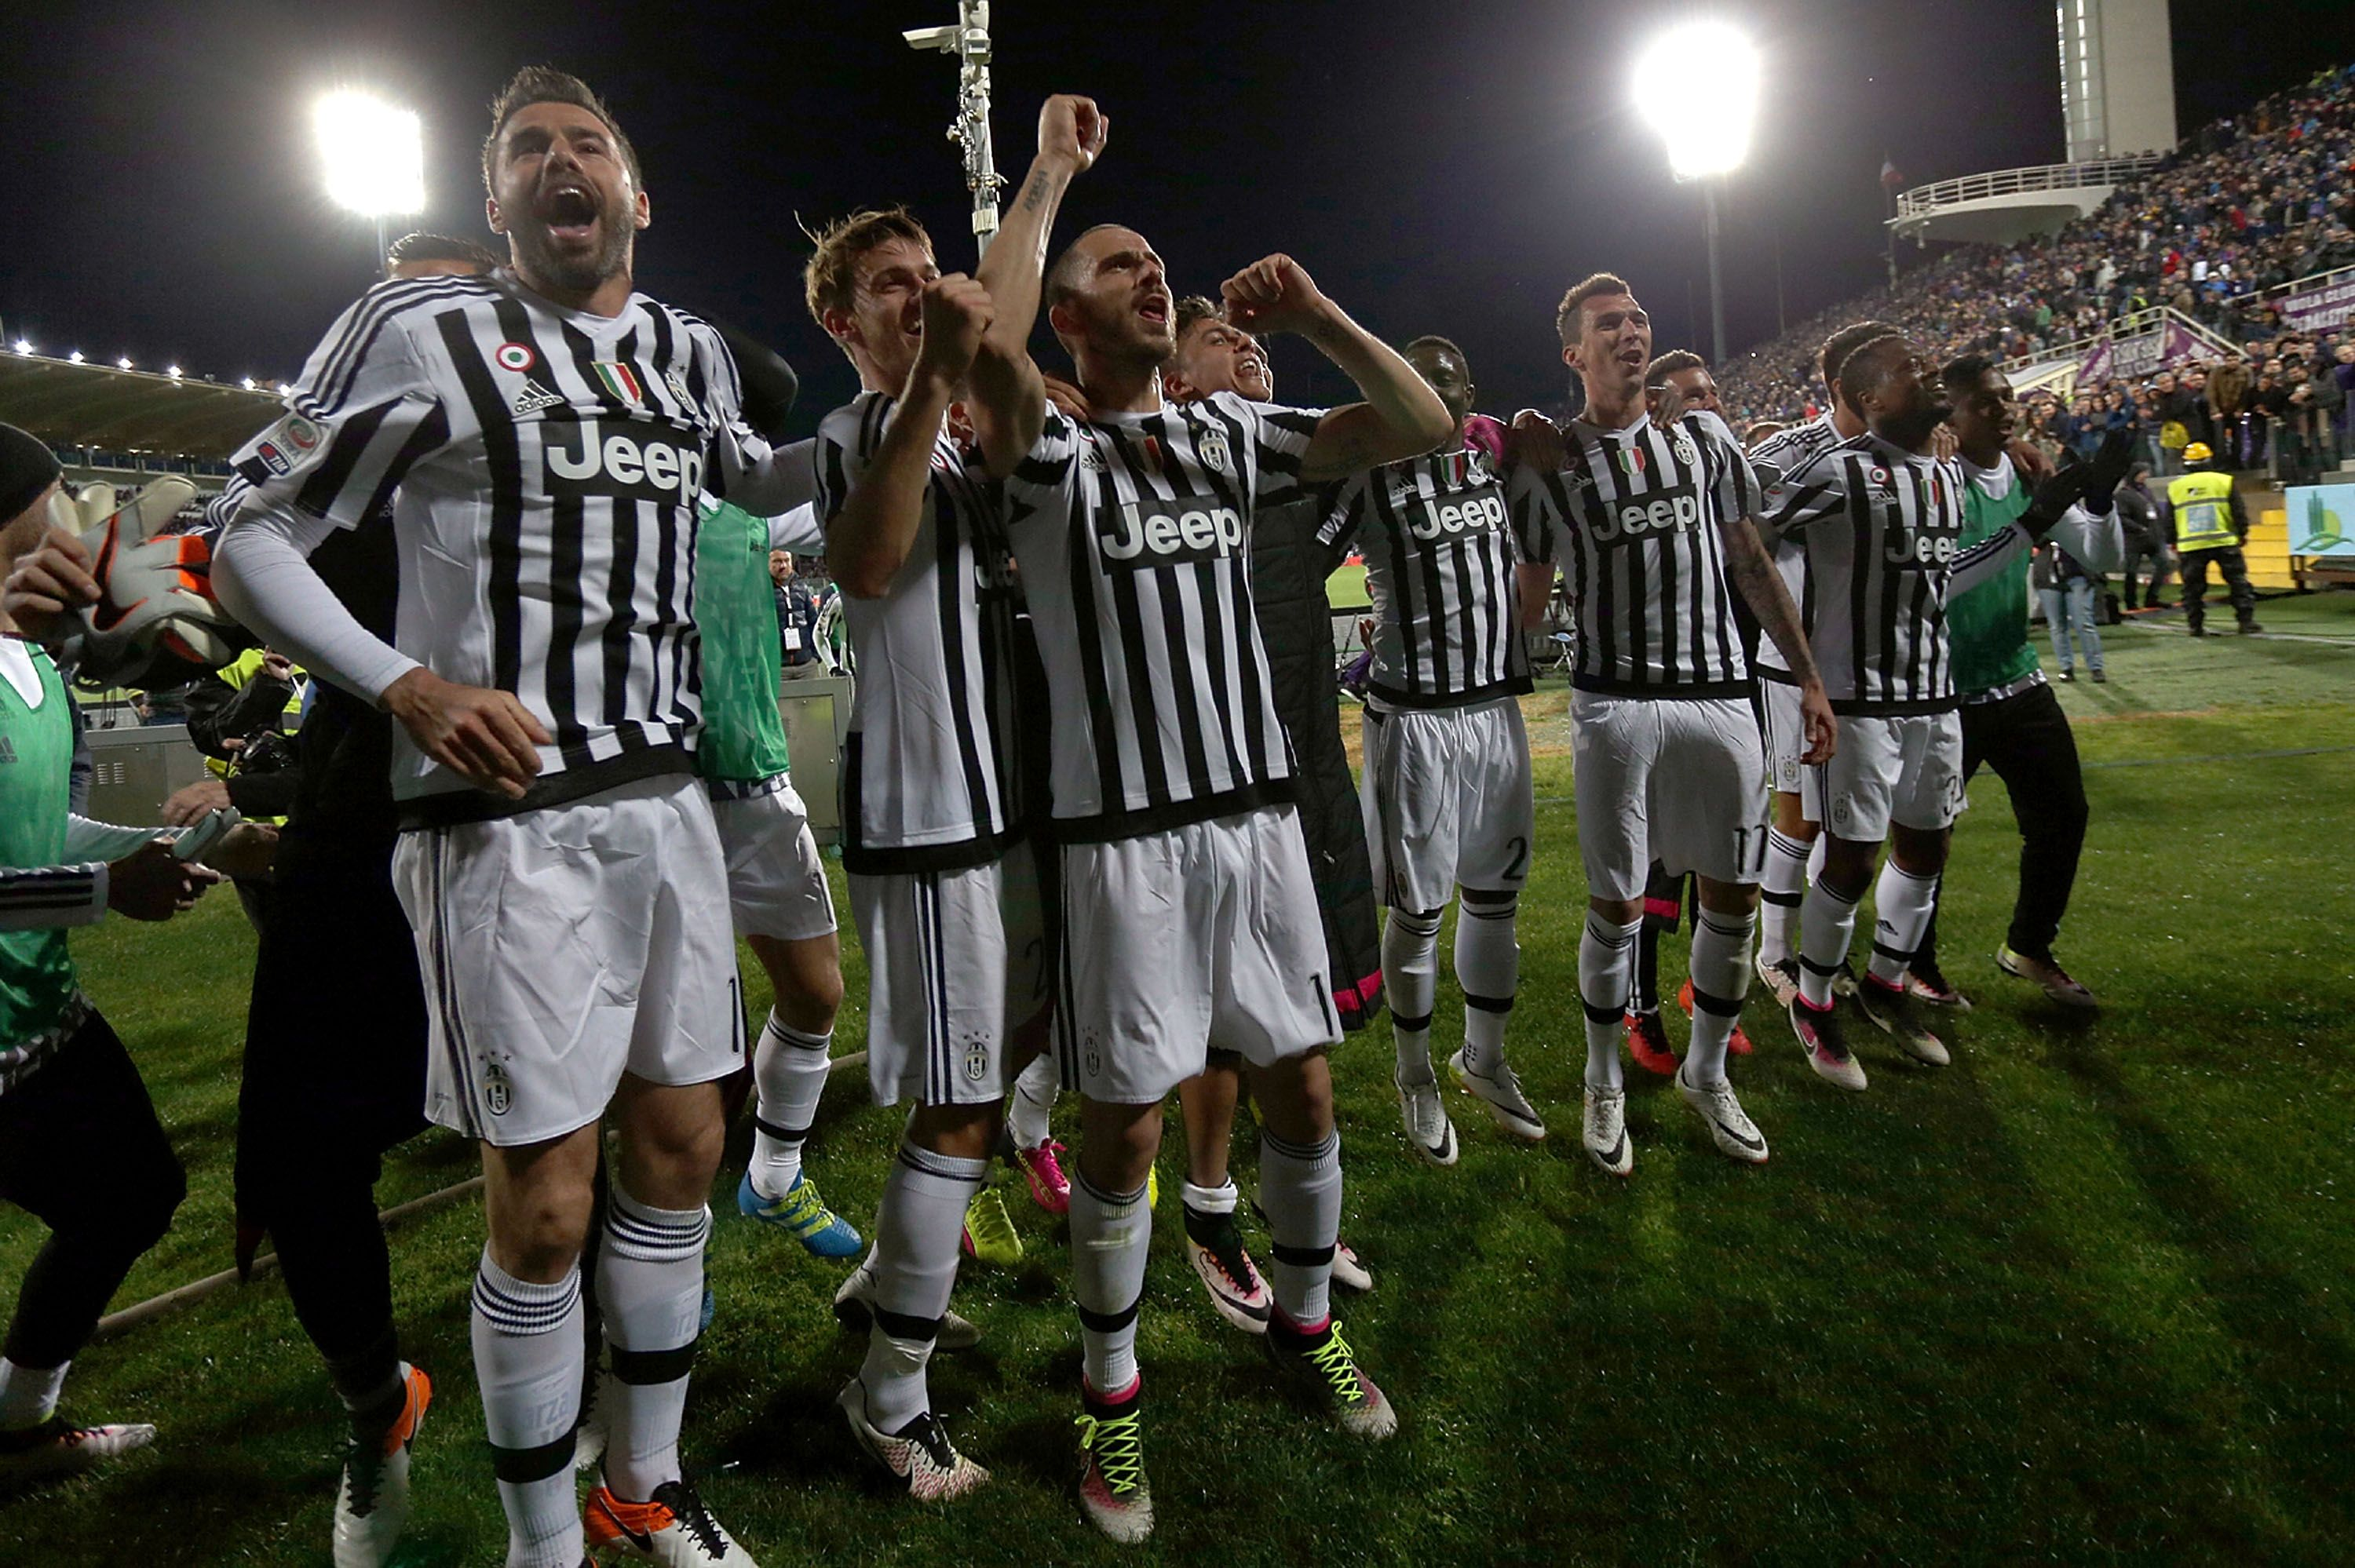 Players of Juventus celebrate their victory in the Serie A match between Fiorentina and Juventus at Stadio Artemio Franchi on April 24, 2016 in Florence, Italy. (Gabriele Maltinti/Getty Images)